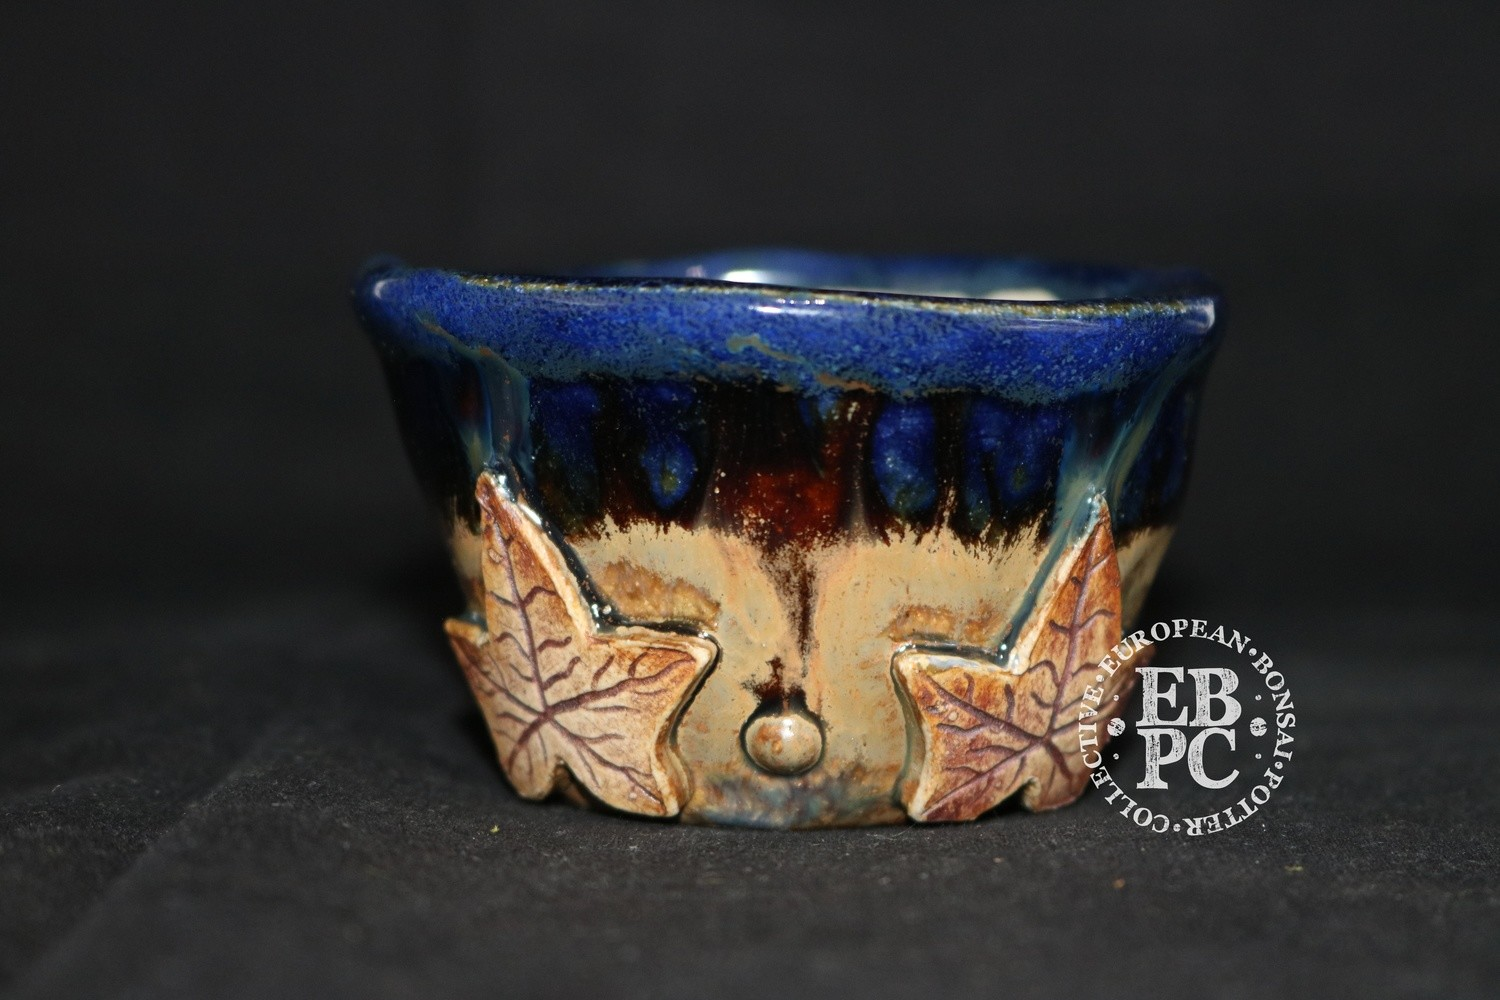 SUTEKI - 8.1cm; Accent / mame; Carved leaf design; Round; Glazed; Blue; Browns; EBPC Dual Stamped Piece; Simon Haddon